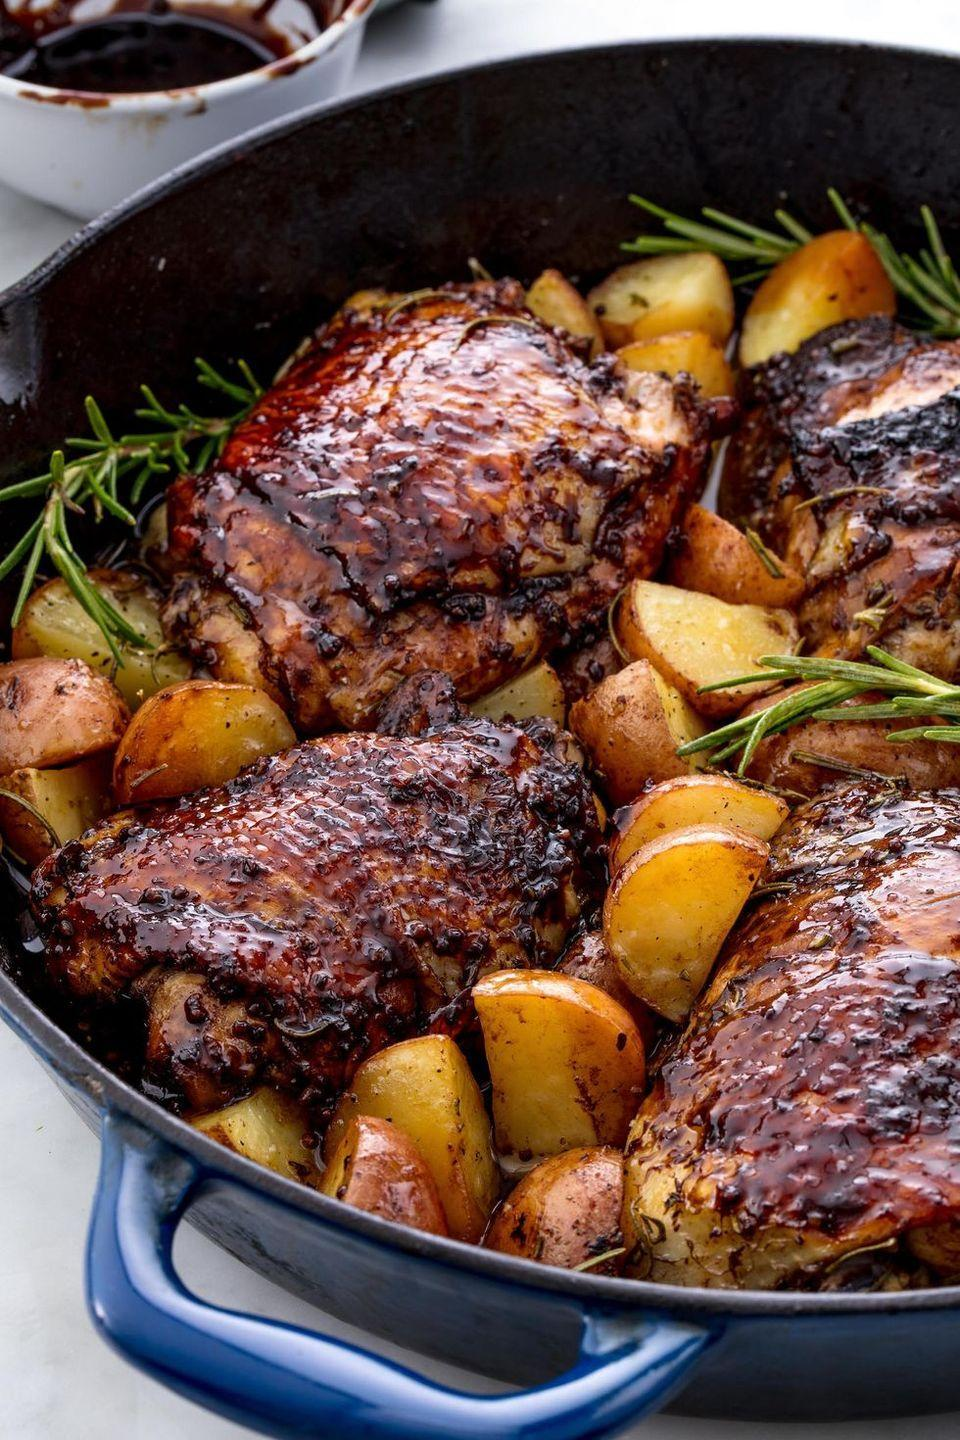 """<p>This sweet, tangy chicken is the perfect weeknight dinner. </p><p>Get the <a href=""""https://www.delish.com/uk/cooking/recipes/a29067681/balsamic-glazed-chicken/"""" rel=""""nofollow noopener"""" target=""""_blank"""" data-ylk=""""slk:Balsamic Glazed Chicken"""" class=""""link rapid-noclick-resp"""">Balsamic Glazed Chicken</a> recipe.</p>"""